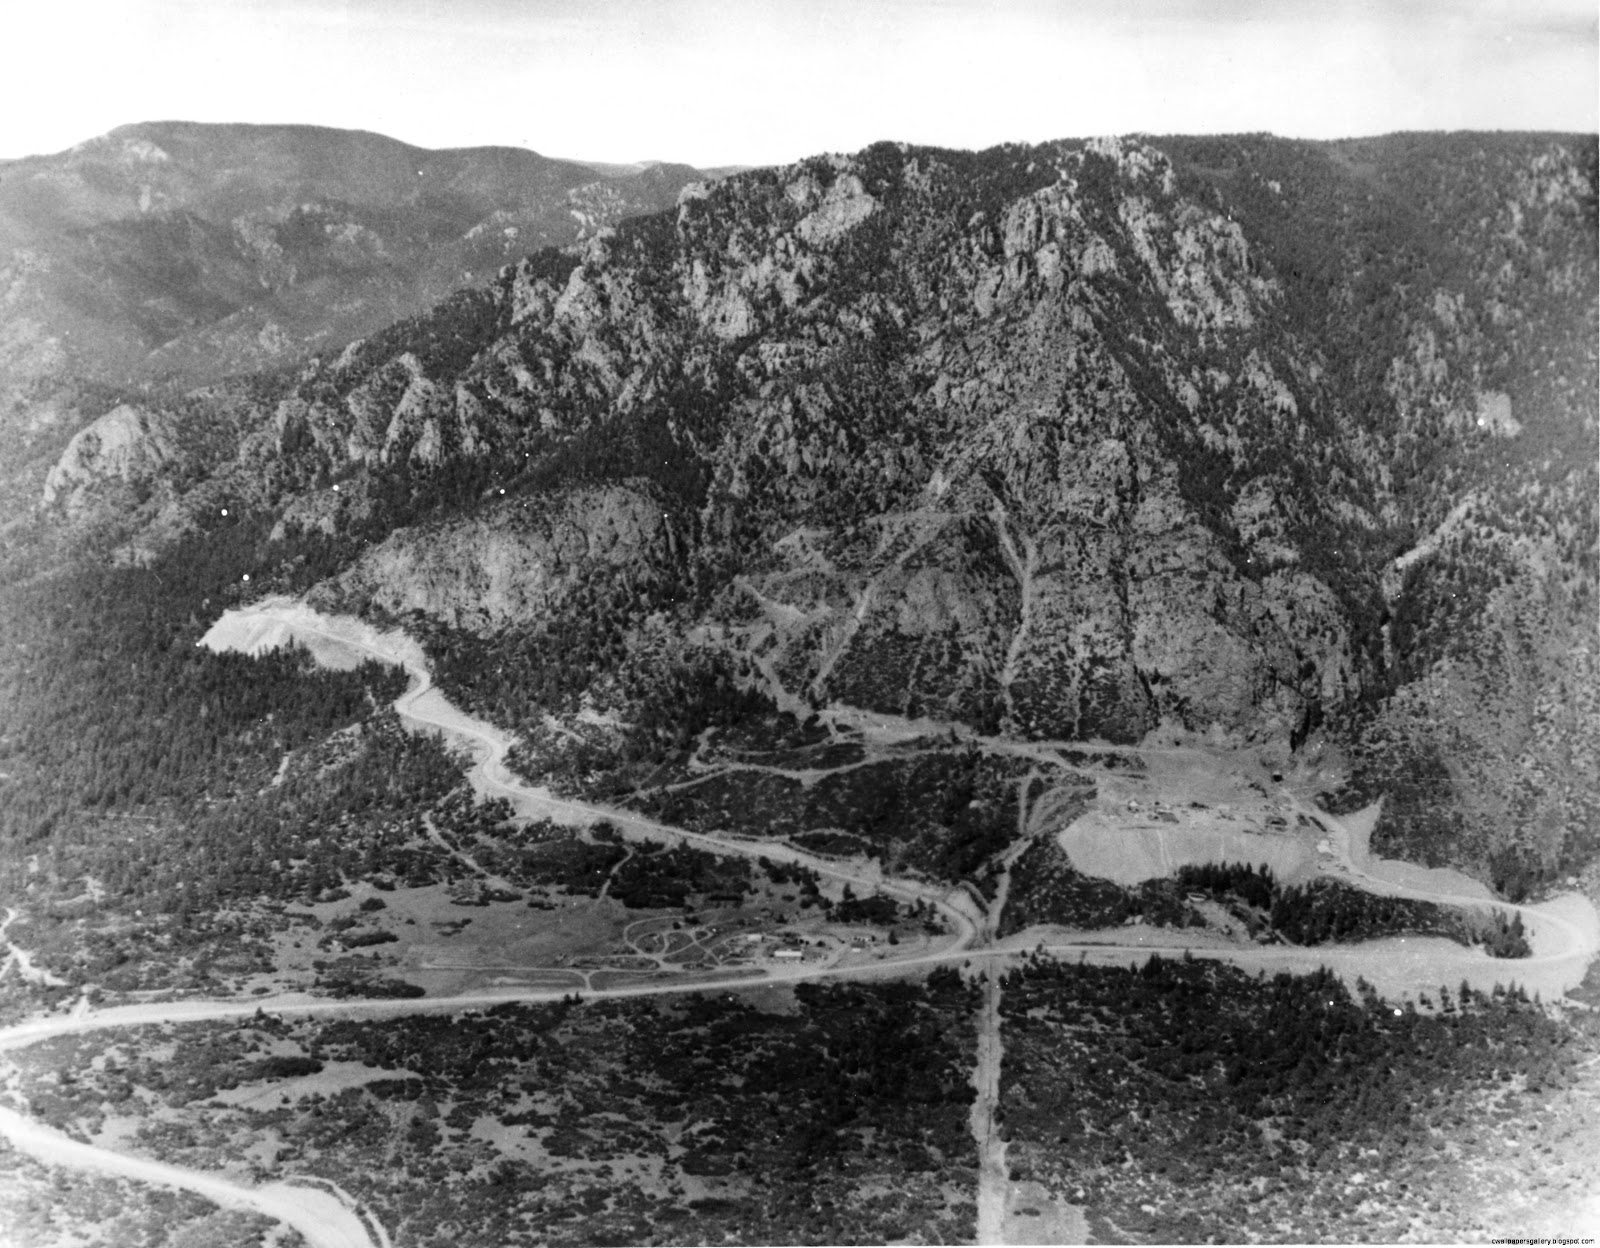 Cheyenne Mountain NORAD Colorado Springs